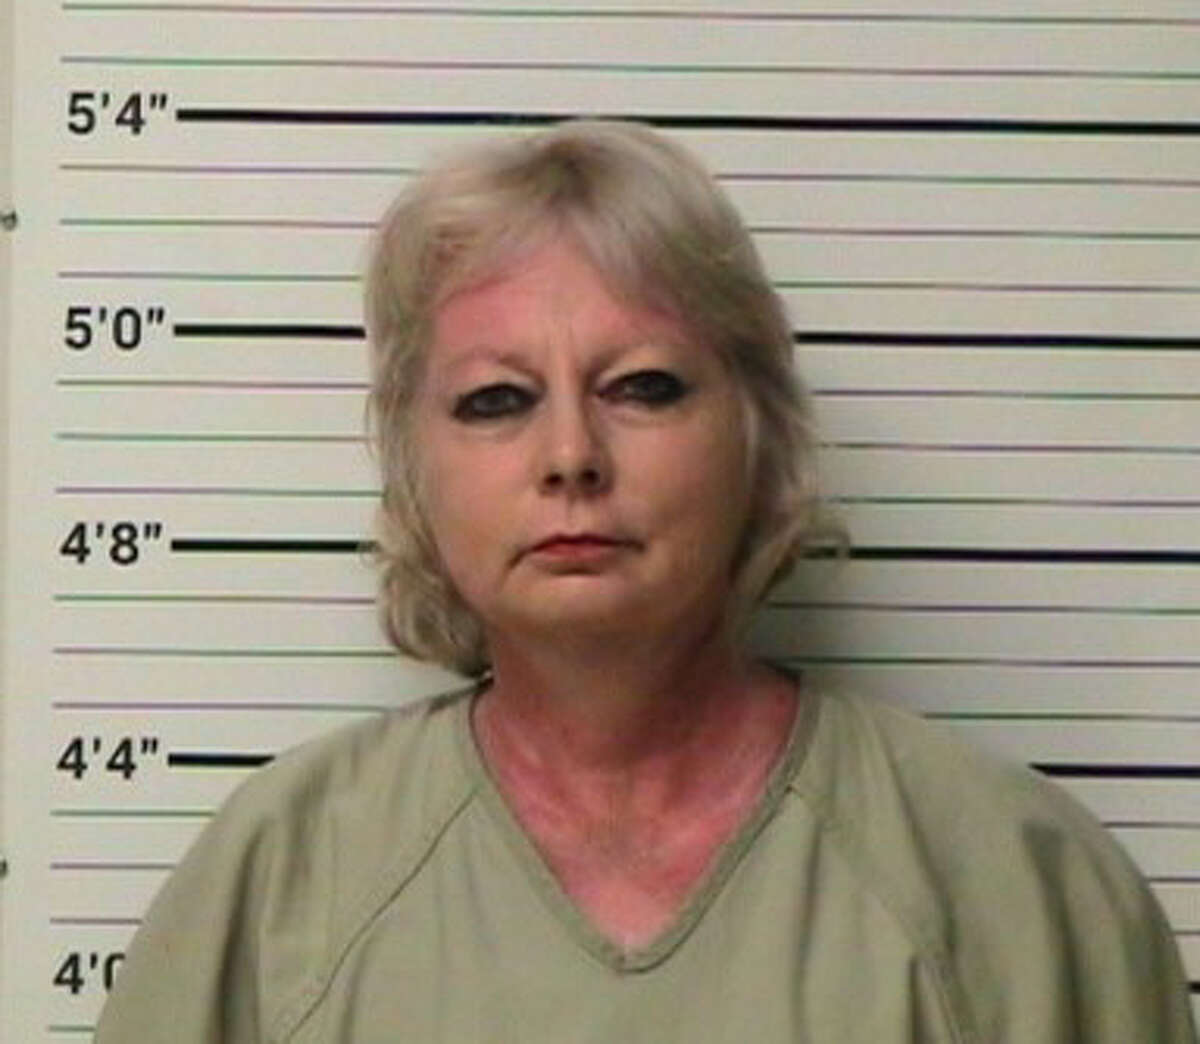 Kerr County District Clerk Robbin Burlew was arrested the weekend of March 31-April 1, 2018, and is facing charges of DWI/open container.